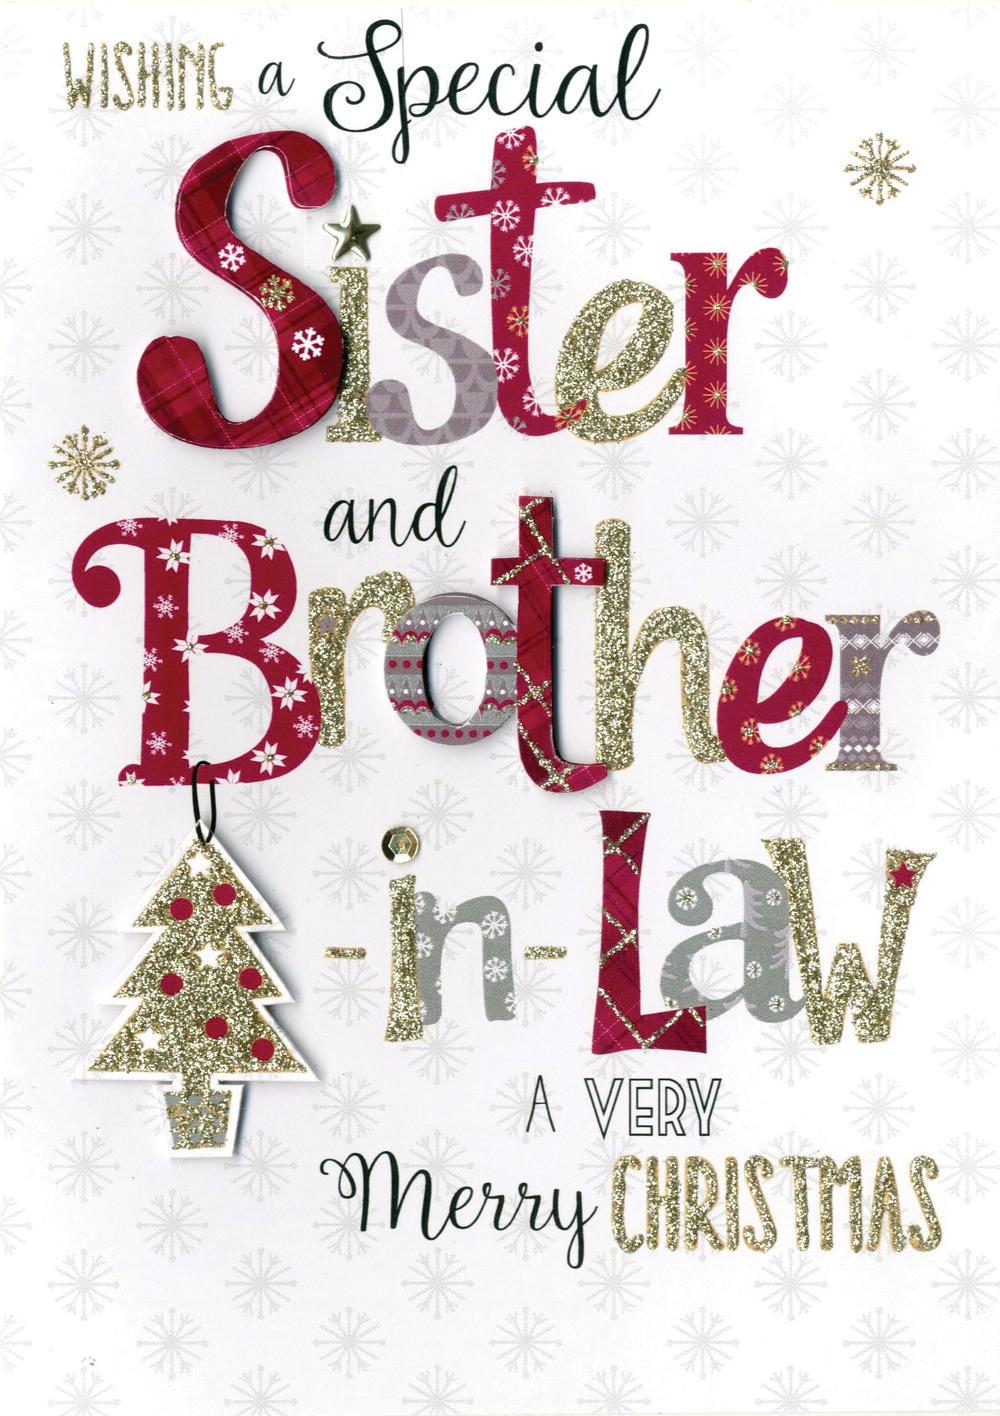 Sister & Brother-In-Law Embellished Hand-Finished Christmas Card